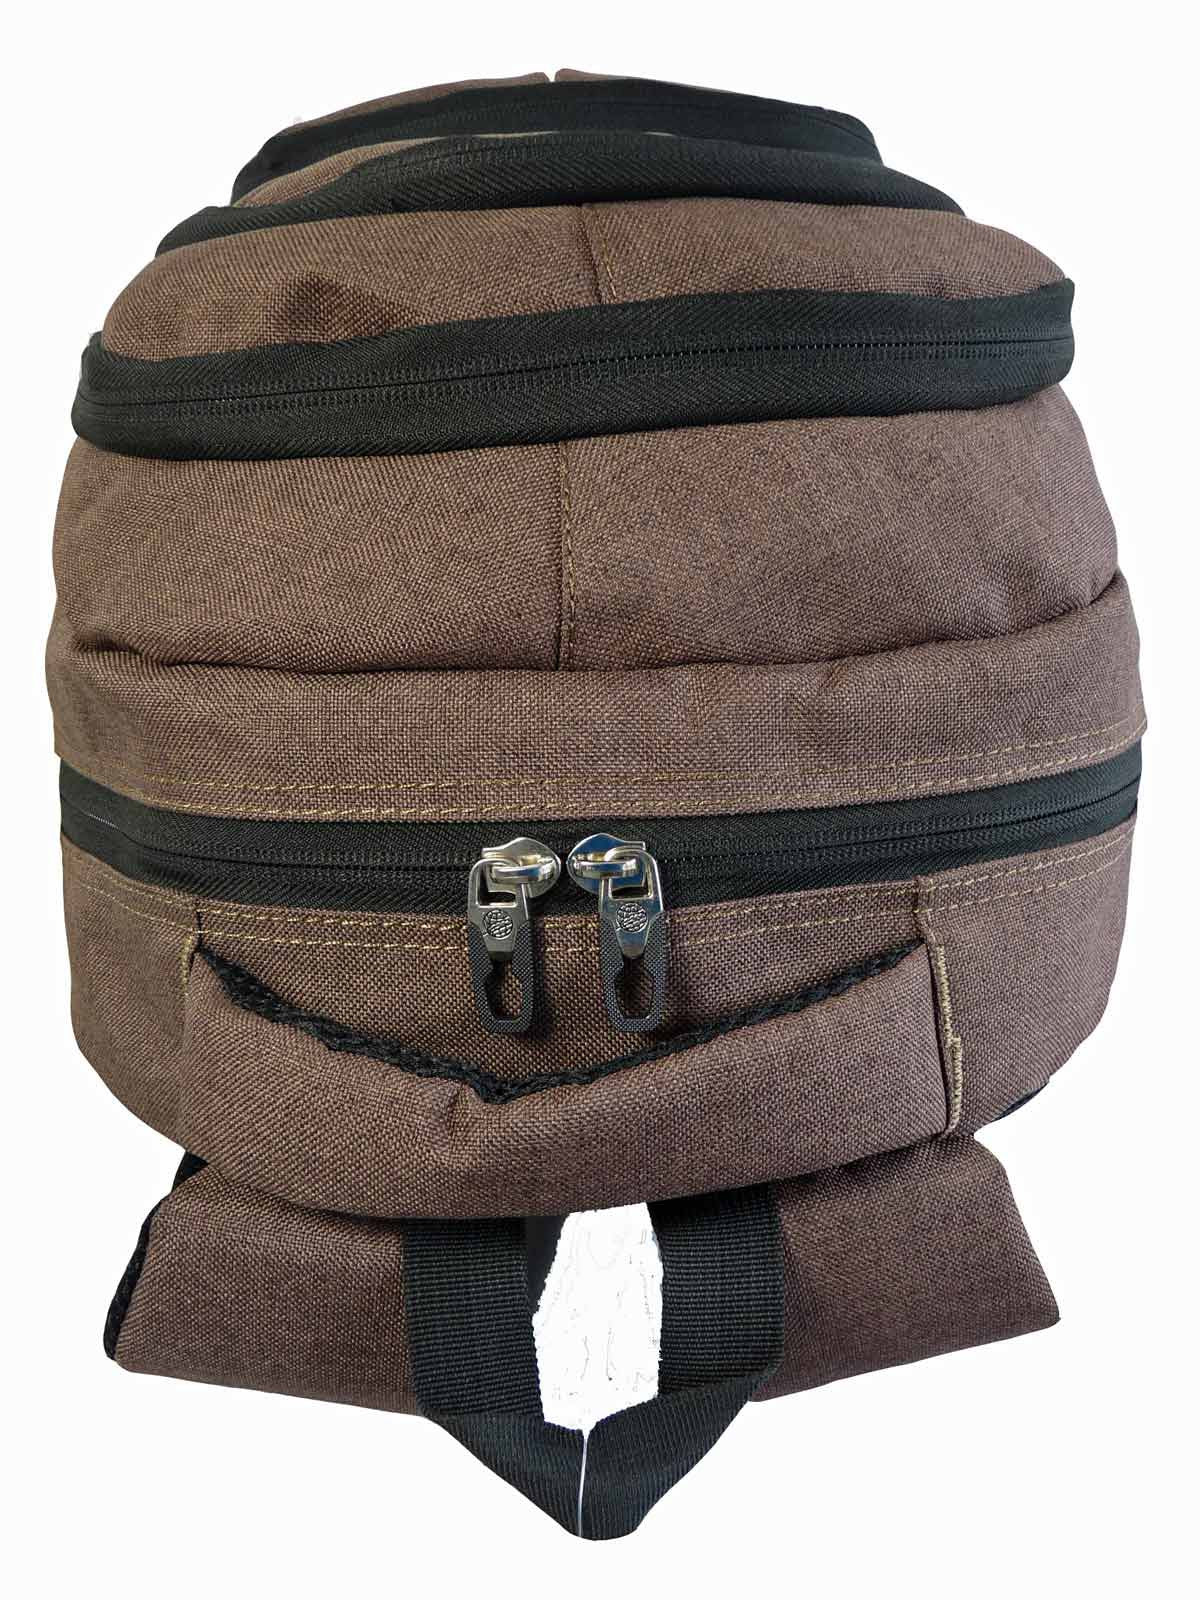 Laptop Macbook Backpack Rucksack Bag RL43B Top View